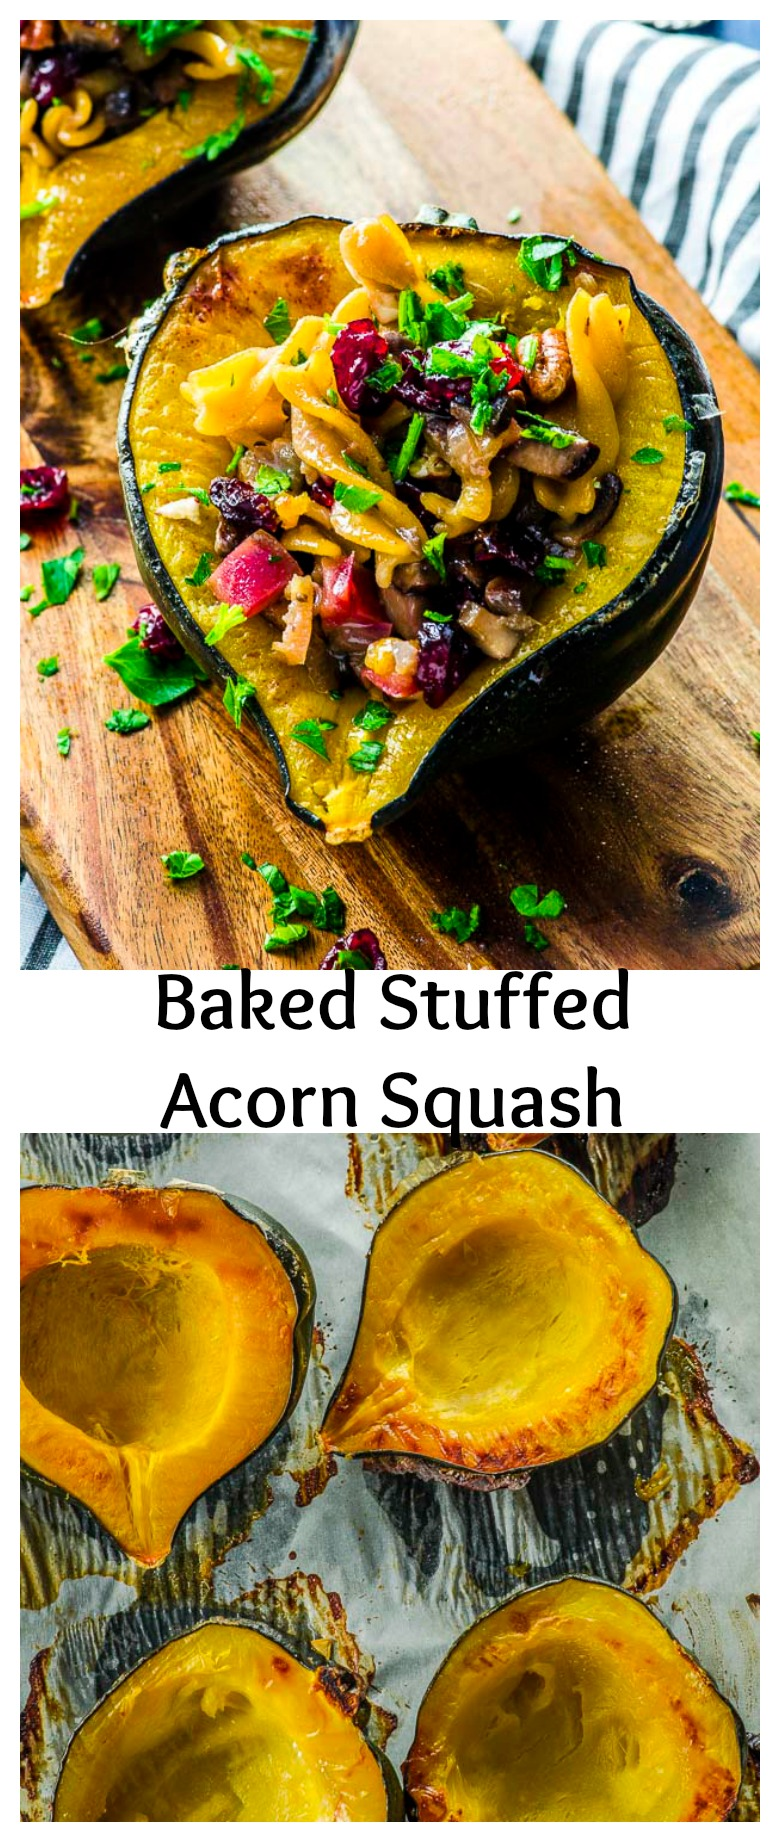 This Baked Stuffed Acorn Squash recipe is easy to prepare and can be served as a vegan, gluten free side or entree on your holiday table or as a weeknight dinner. The acorn squash is stuffed with mushrooms, apples, cranberries pecans and chickpea pasta. The chickpea pasta adds plant based protein, making it a balanced dish.